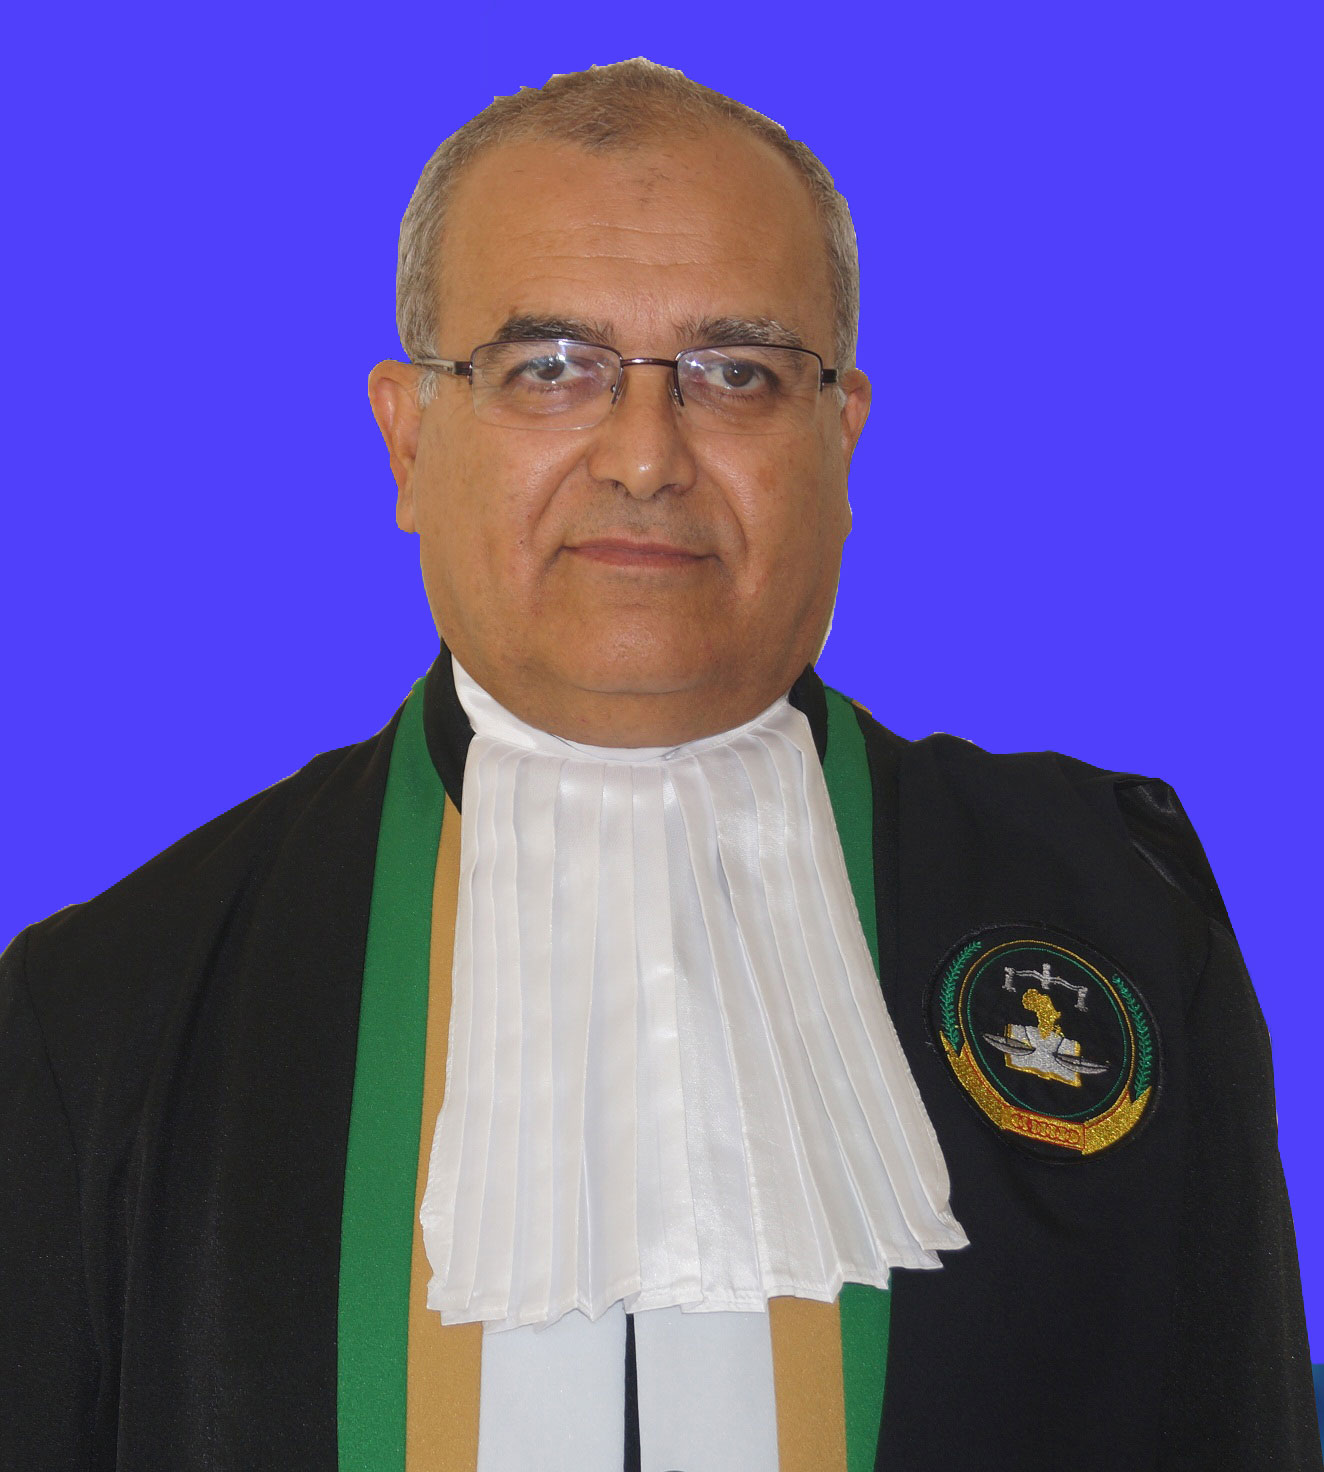 Judge Rafaa